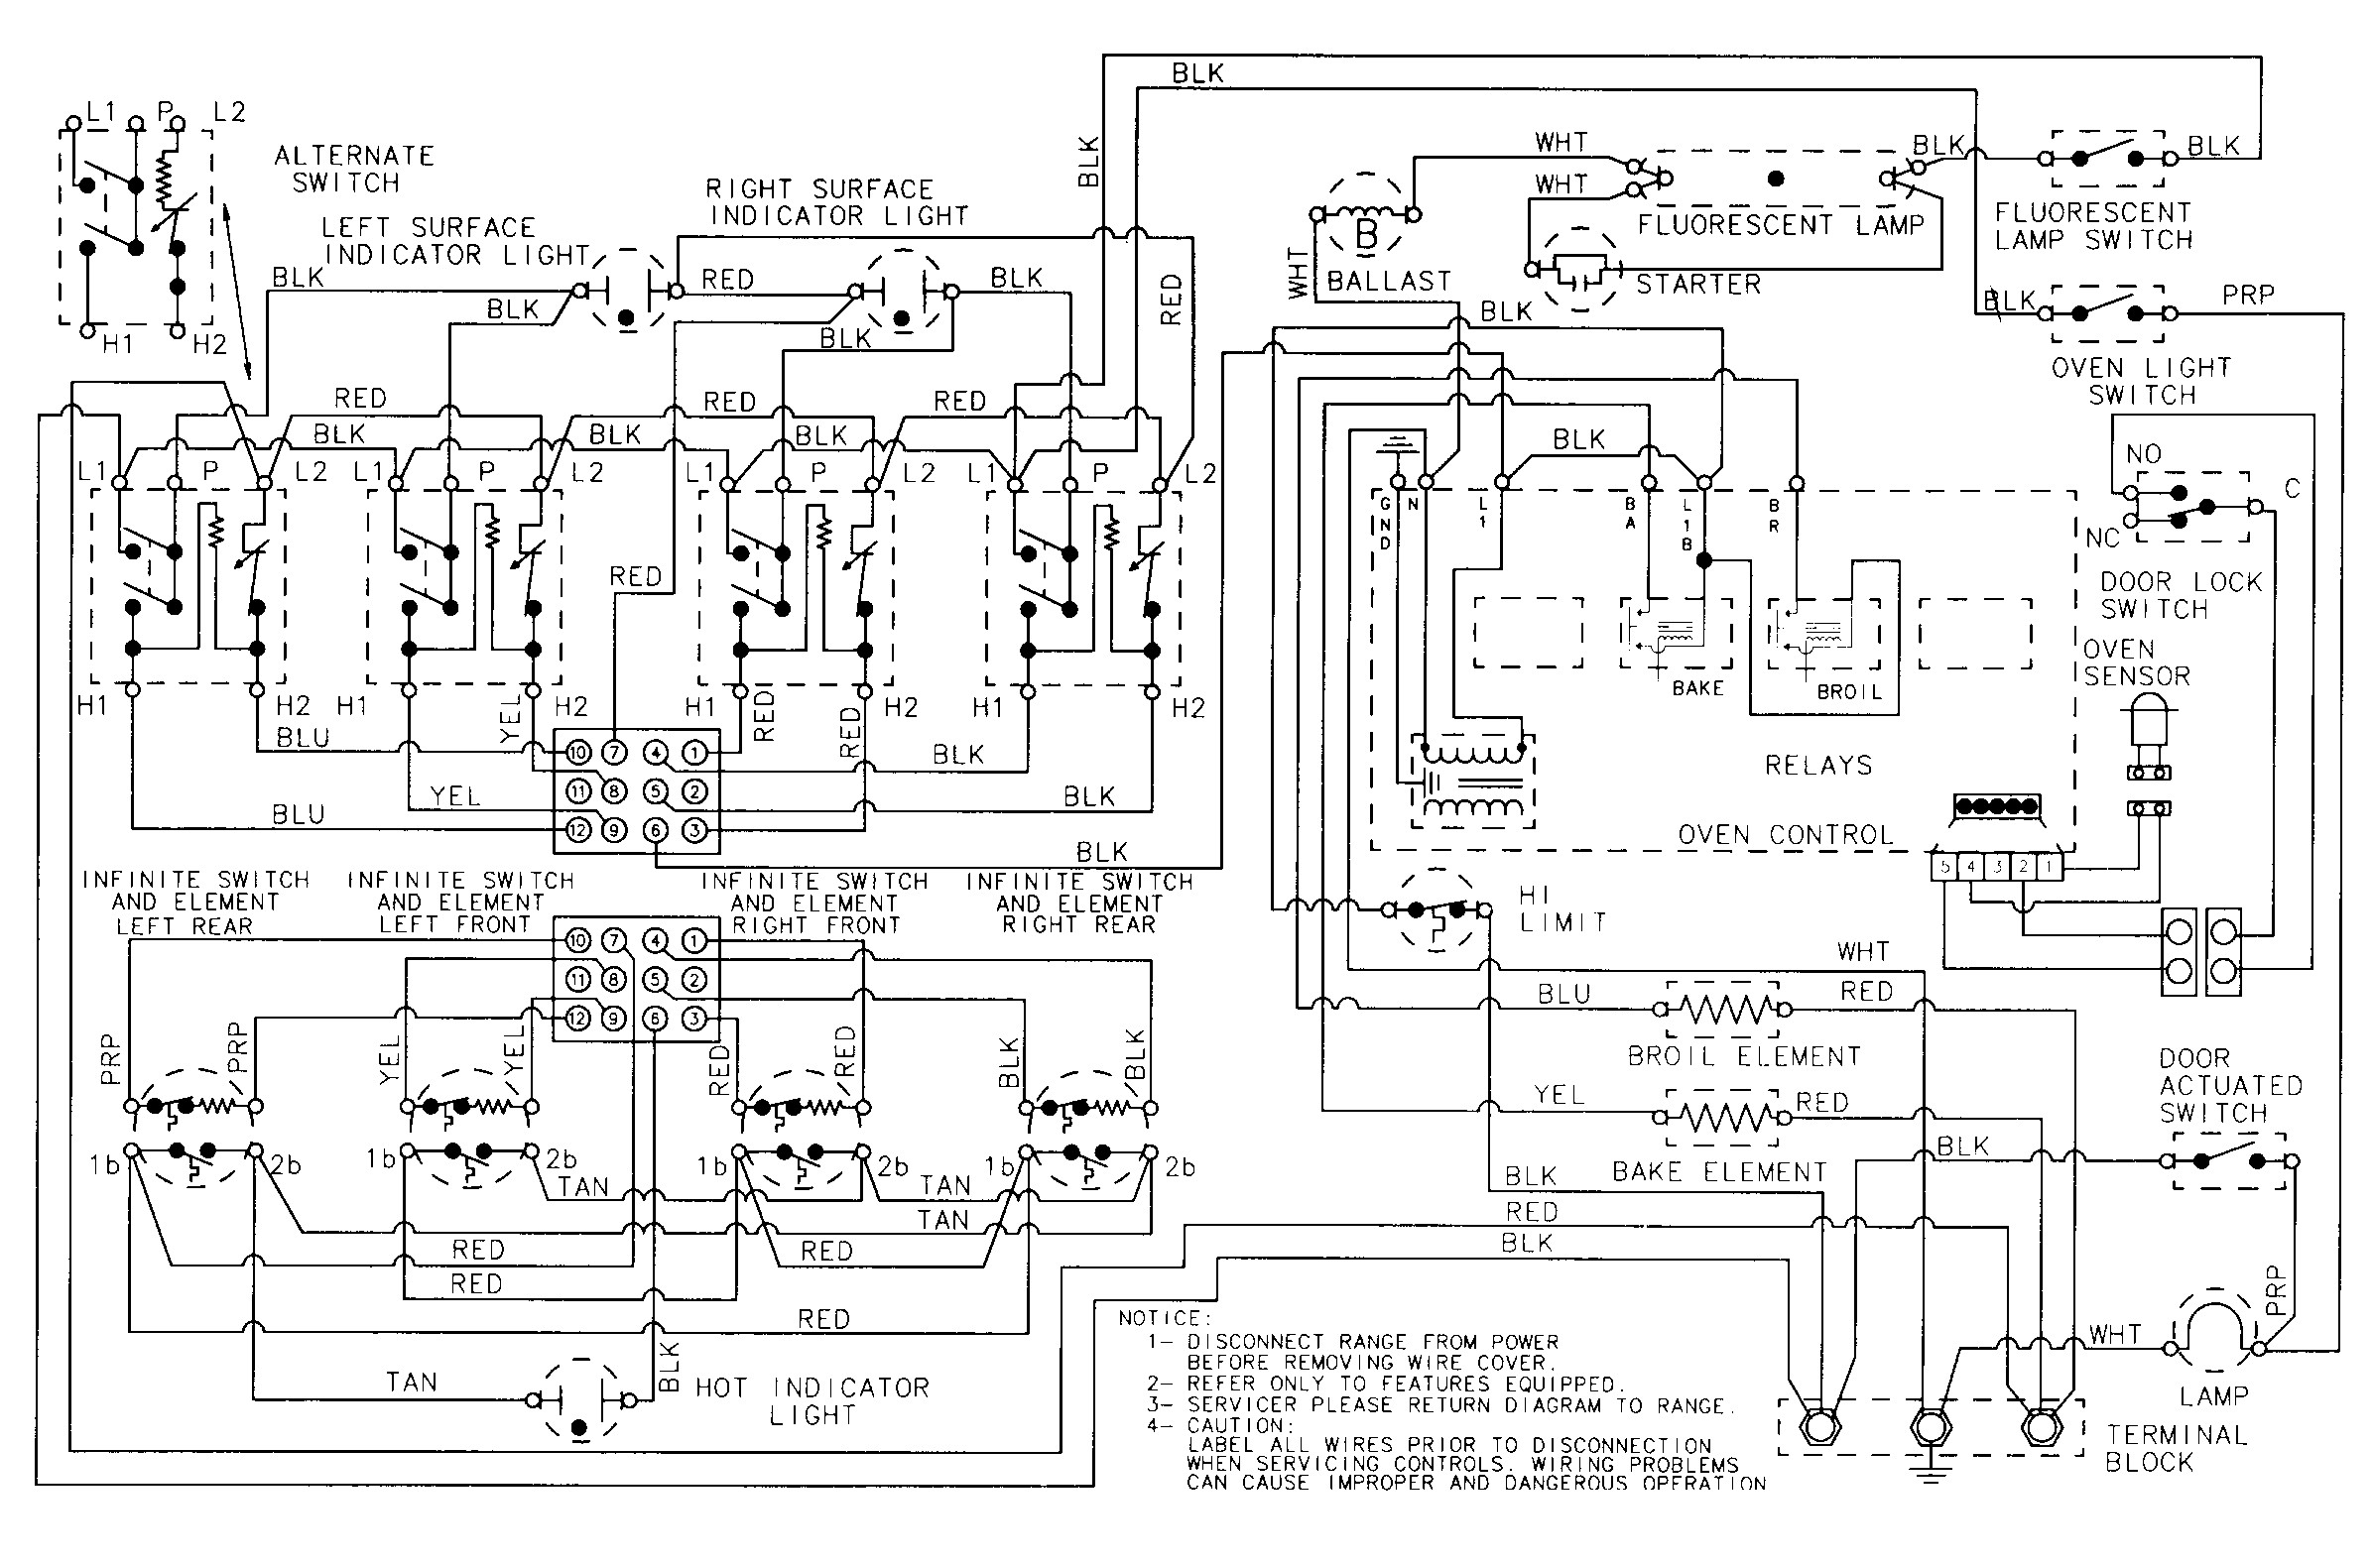 Wiring Diagram for Maytag Dryer Maytag Cre9600 Timer Stove Clocks and Appliance Timers Of Wiring Diagram for Maytag Dryer